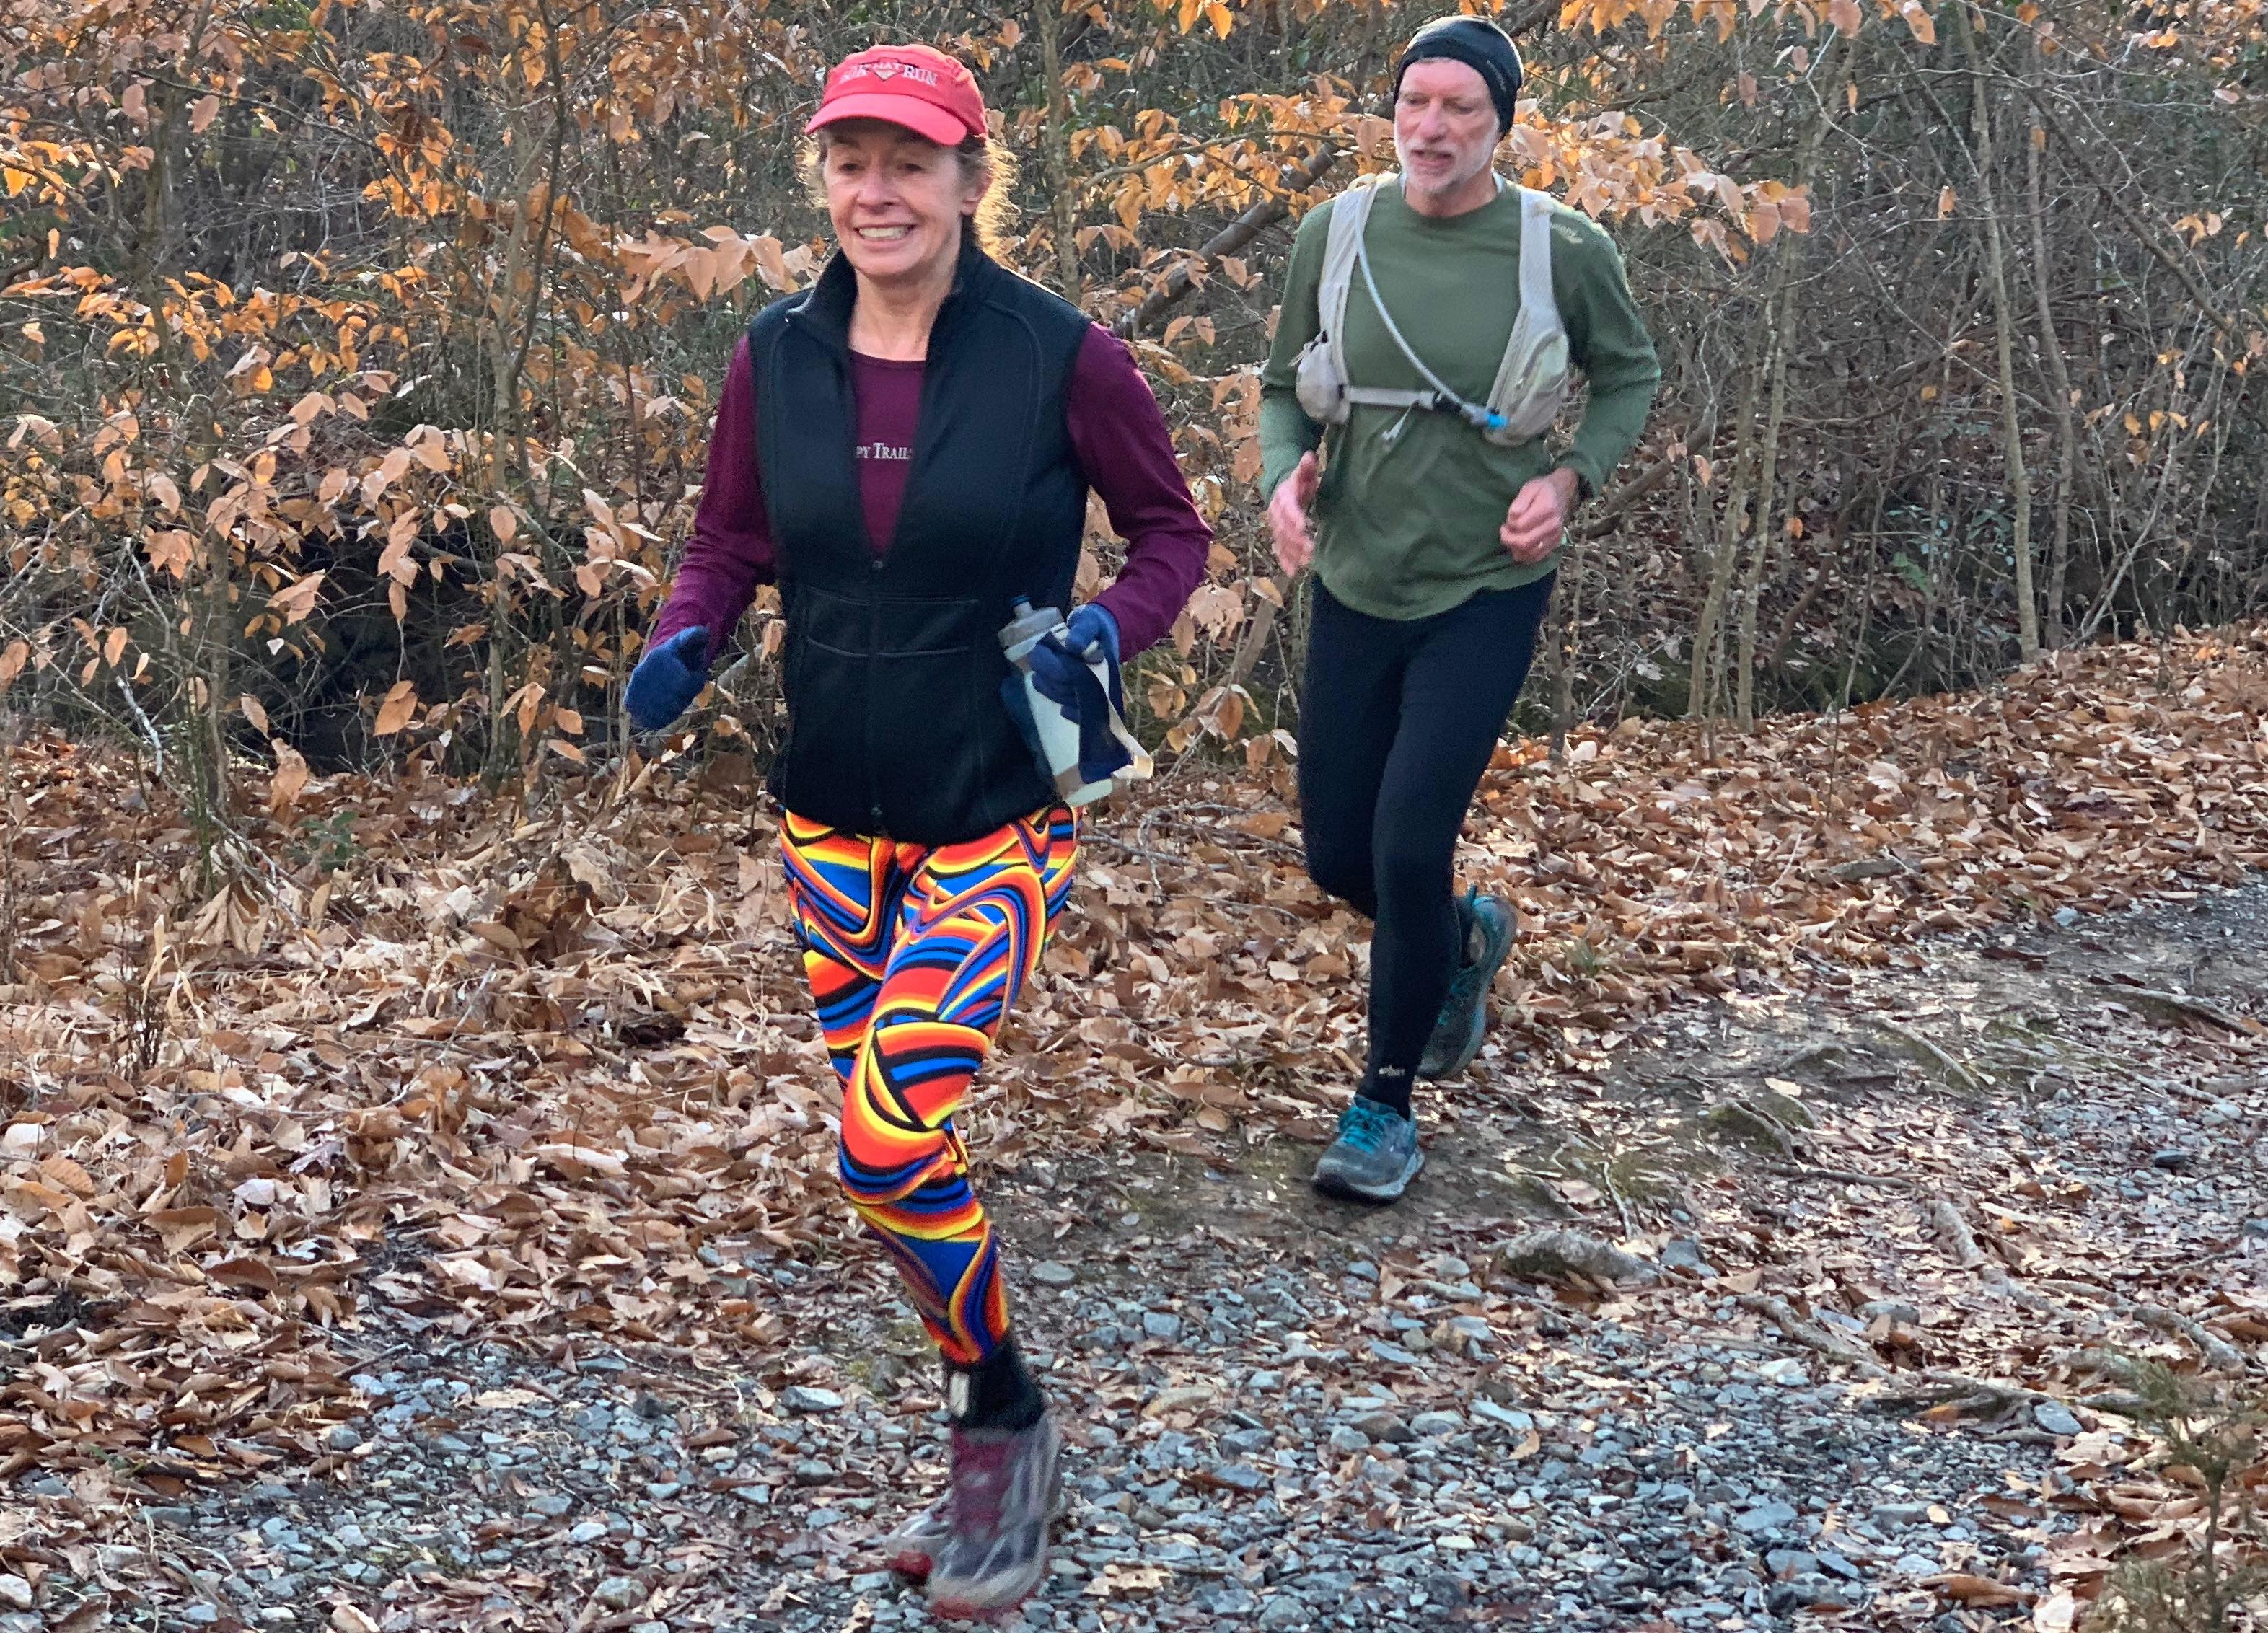 Linda Wack channels Team Slug member, James Moore, with her colorful tights at the 2020 Redeye